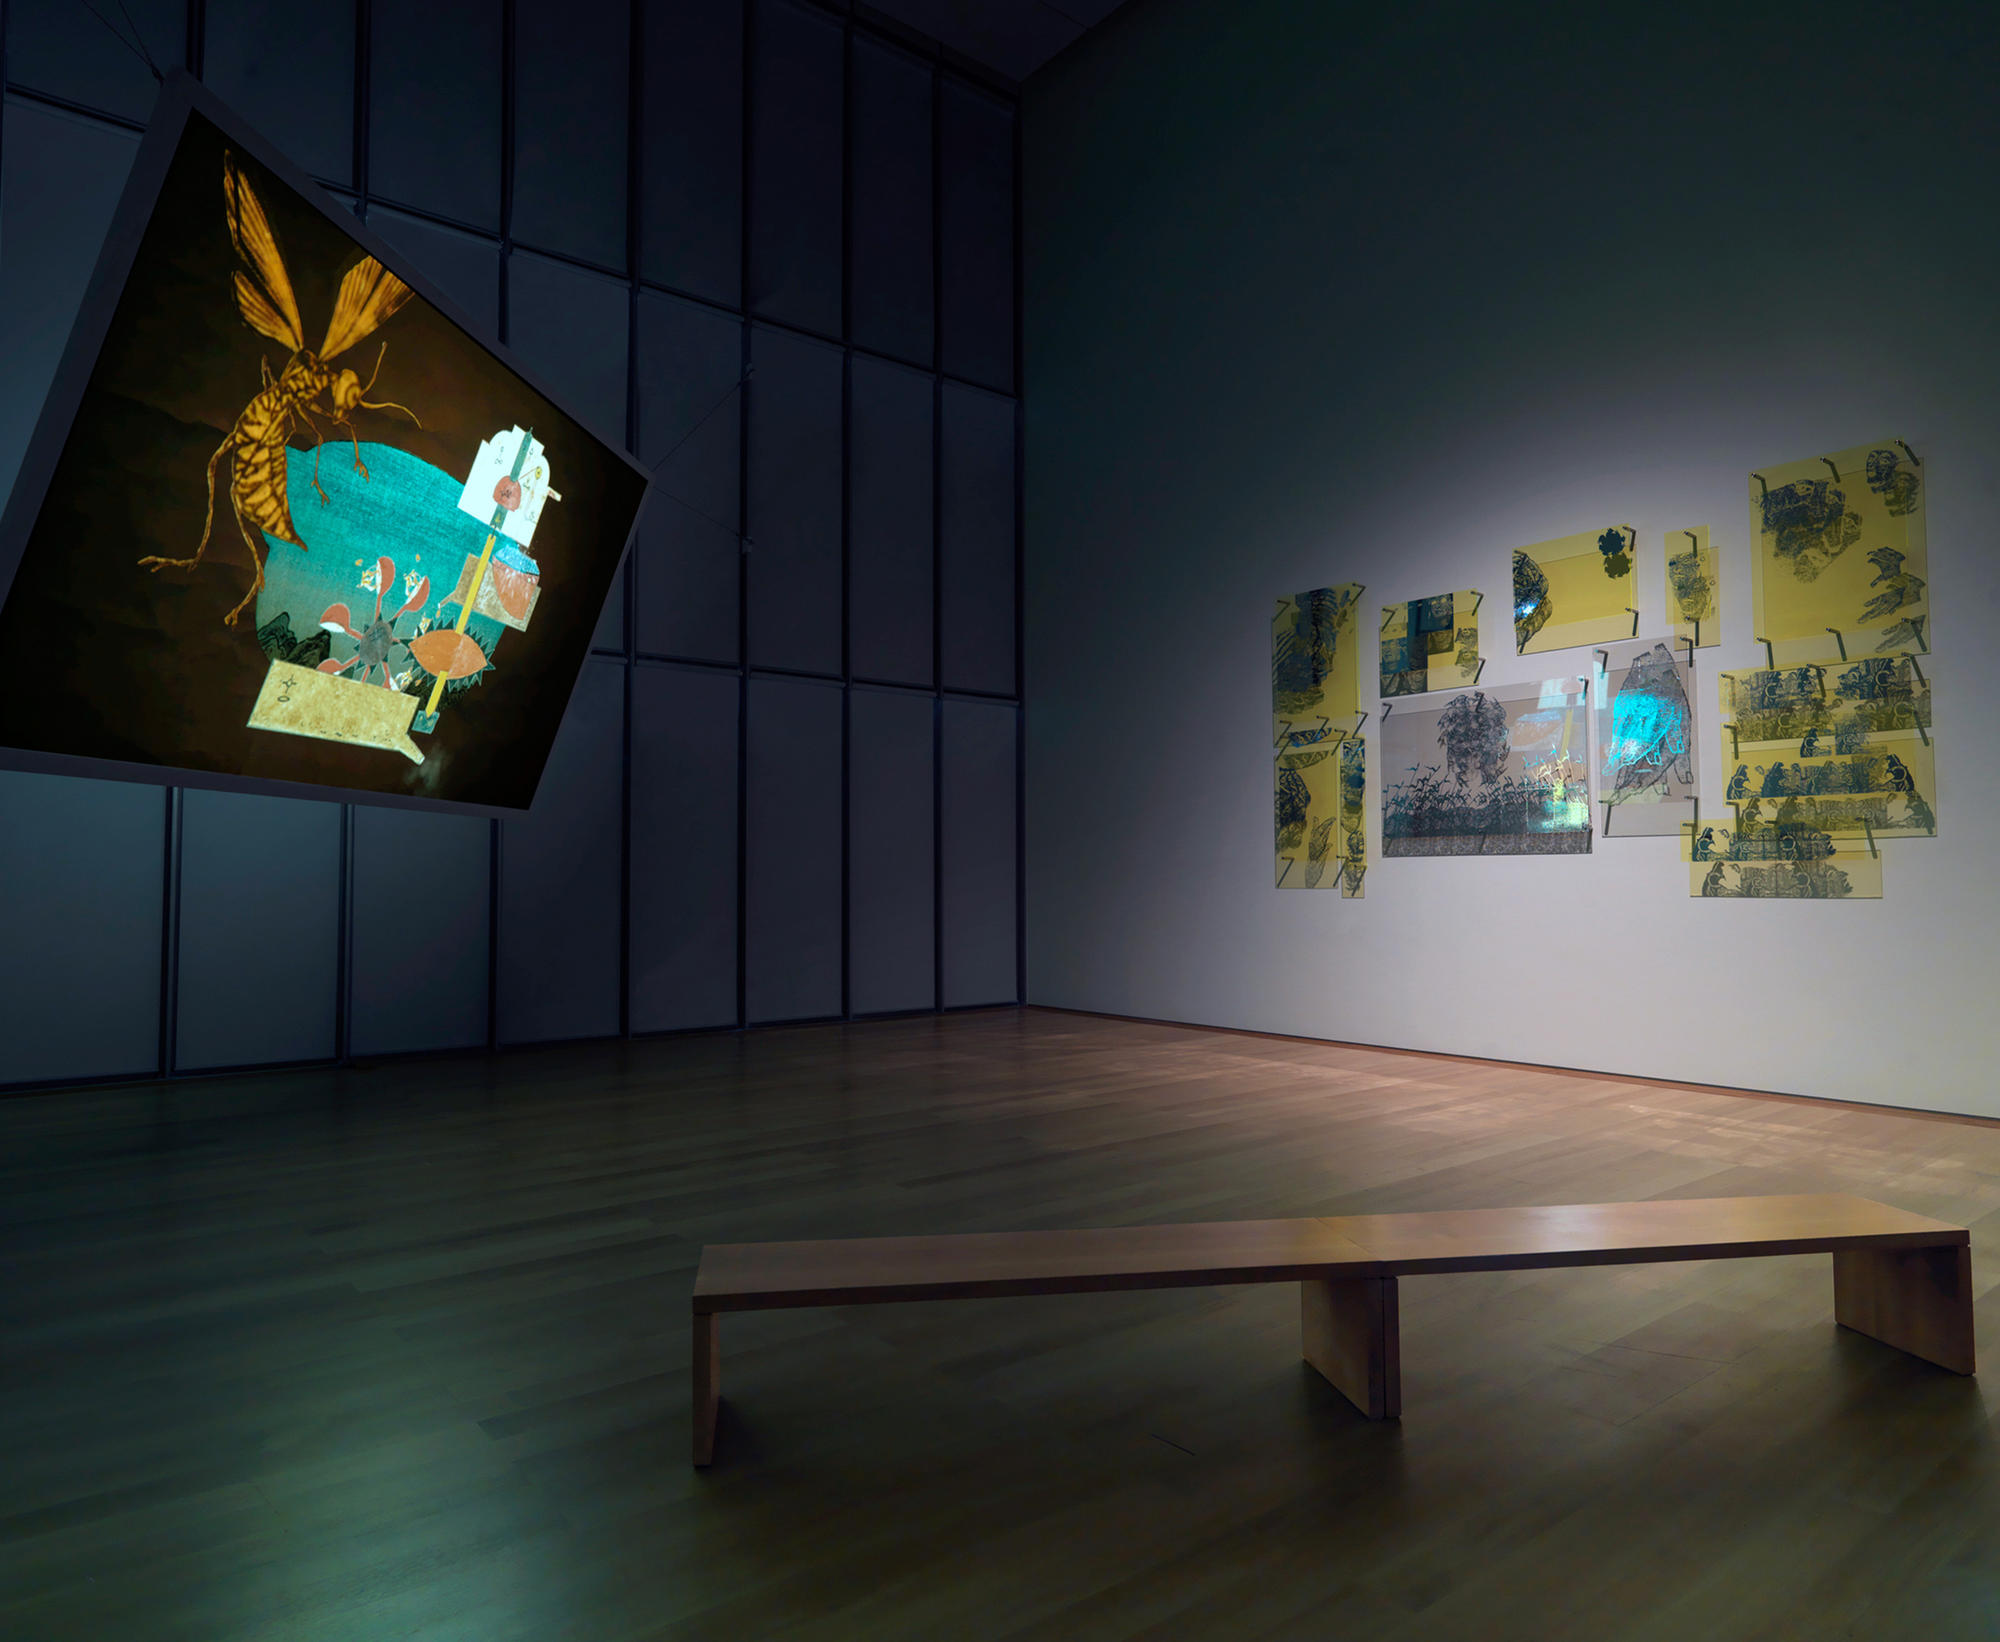 Raqs Media Collective: The Great Bare Mat and Constellation, Installation view of Archetypes and Other Permissive Forms and Equinox, Hostetter Gallery, 2012.